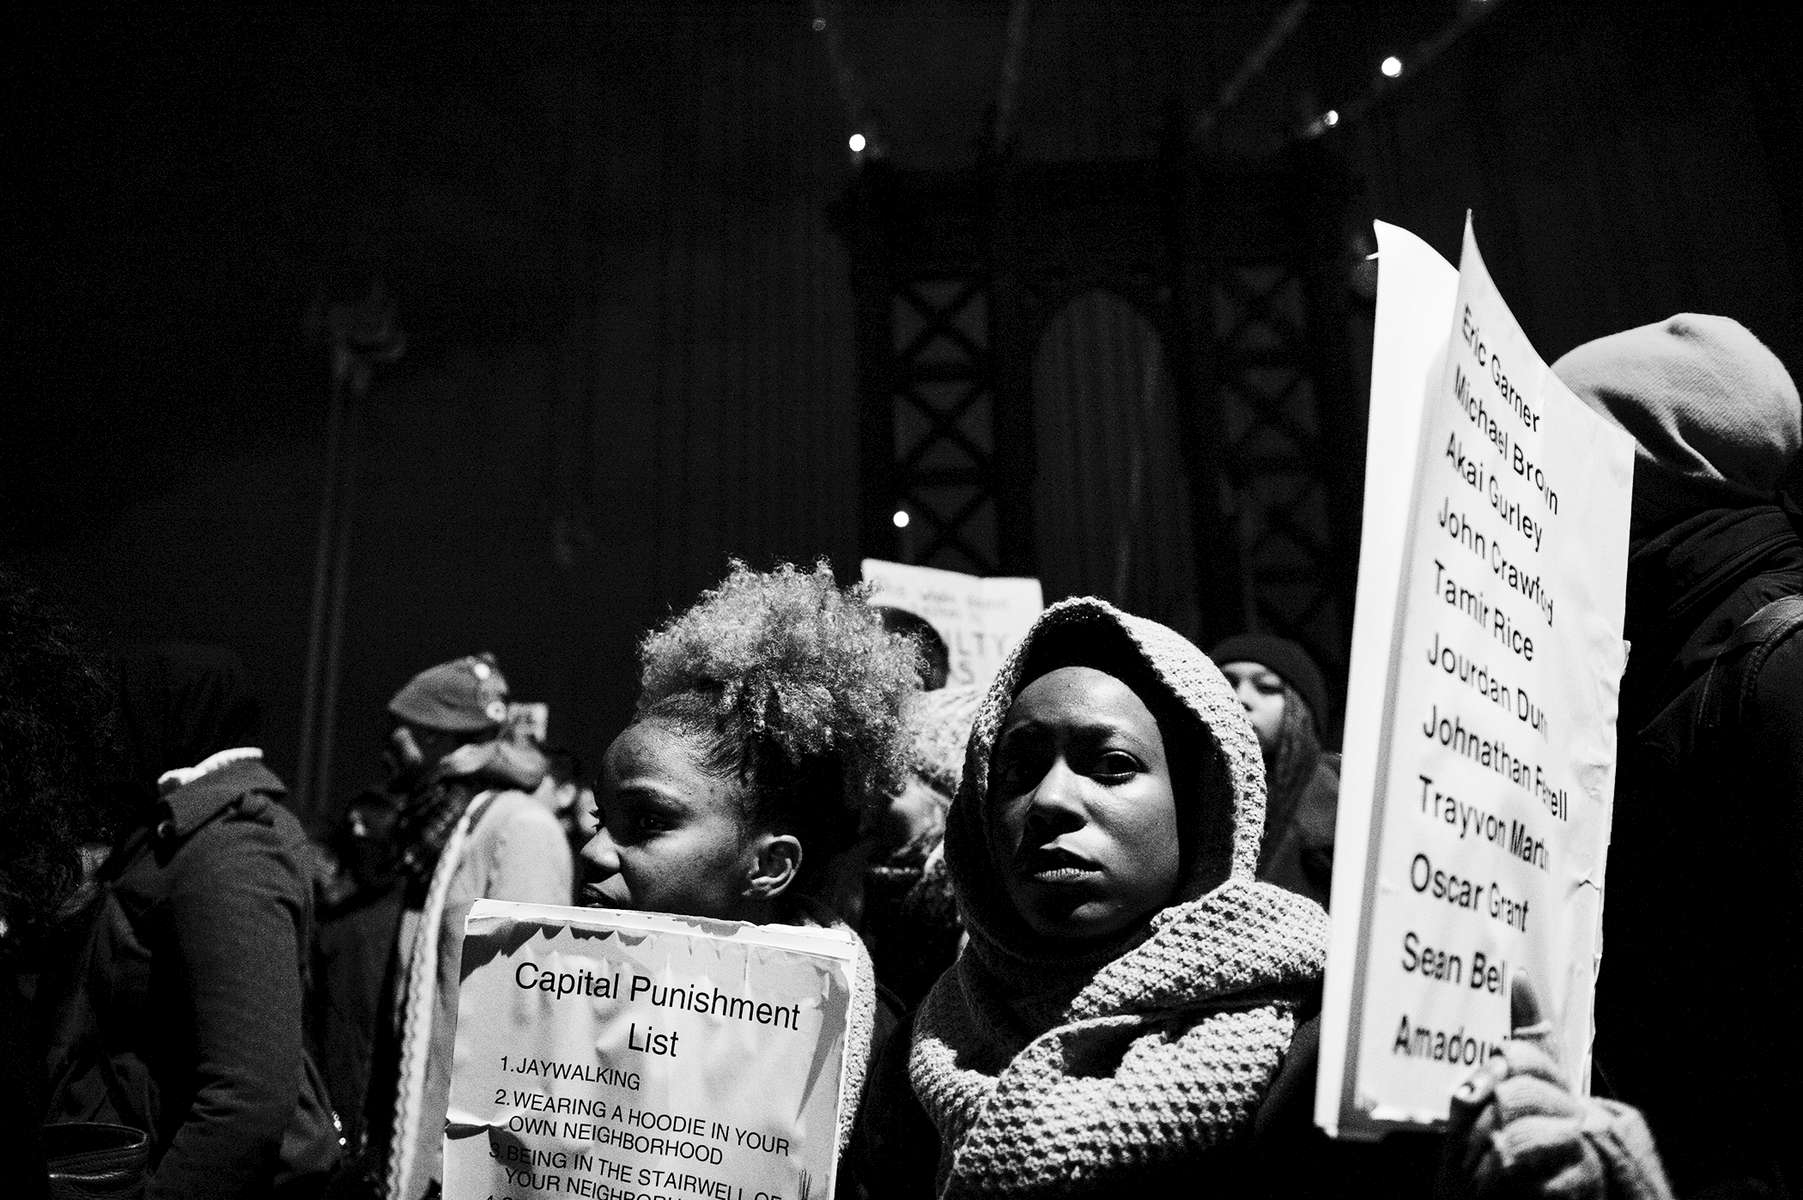 NEW YORK CITY, NY- DEC 4: Protests surge the day after a Staten Island grand jury declined to bring charges in the case of Eric Garner, who died this summer.  Protestors jam into New York's Foley Square in protest on Dec. 4, 2014 in New York City, NY. (Photo by Amanda Voisard/For the Washington Post)